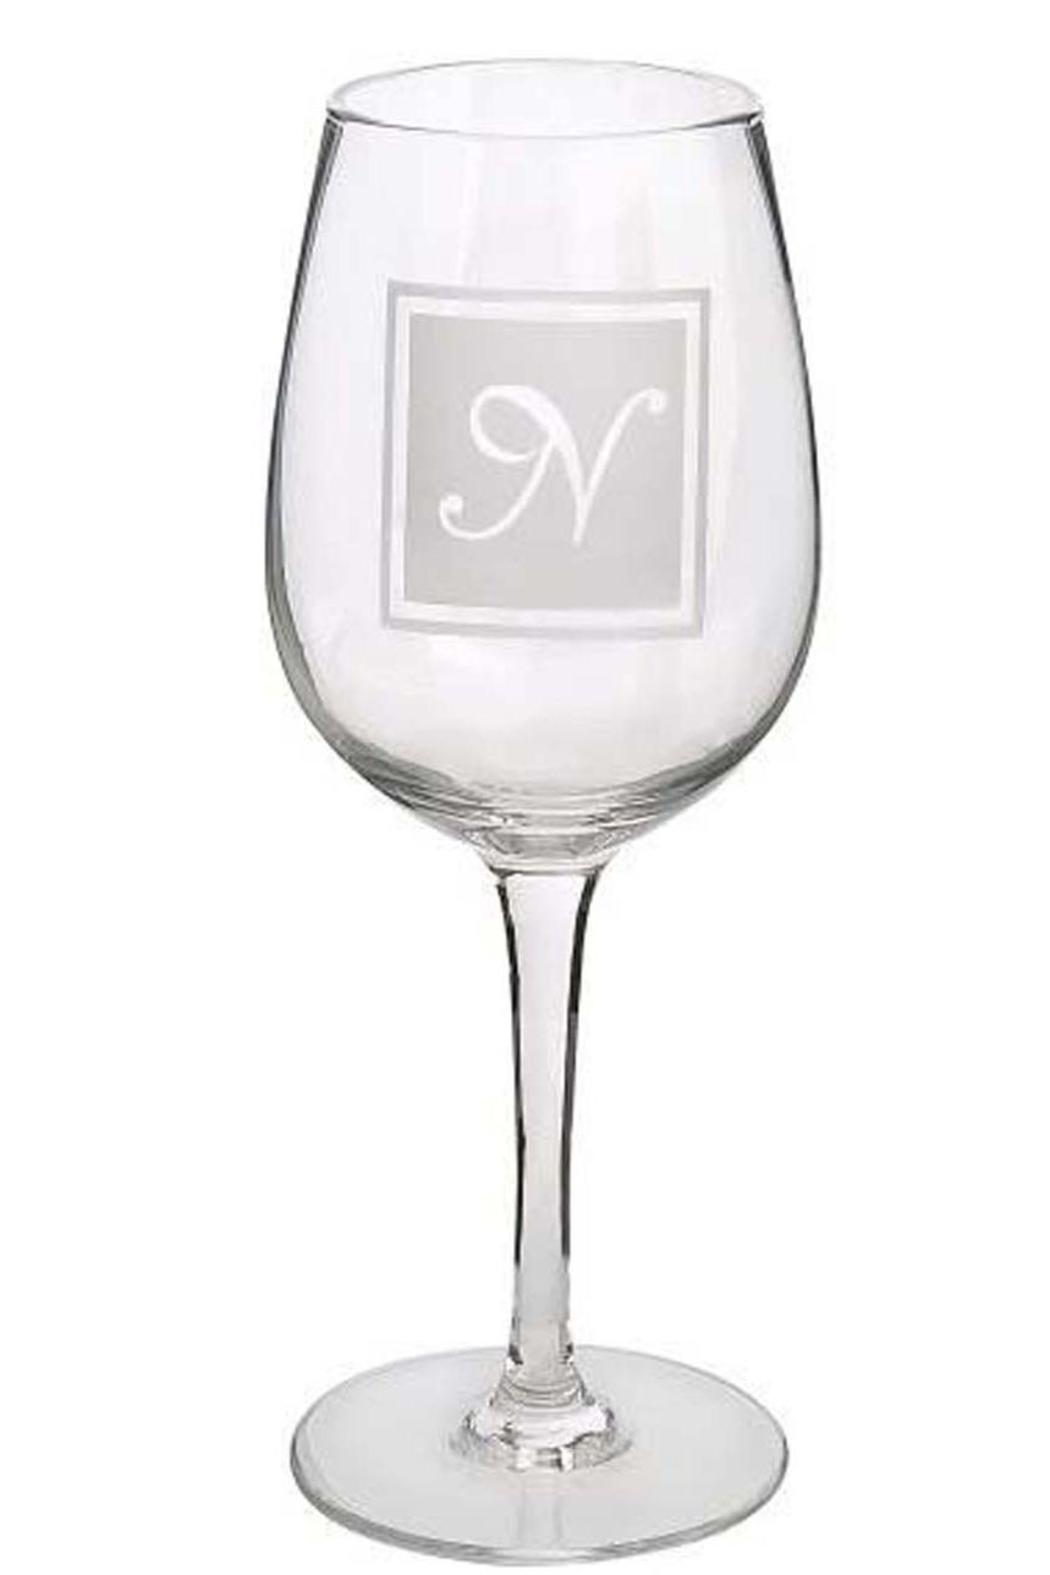 Ganz Initial Wine-Glass N - Main Image